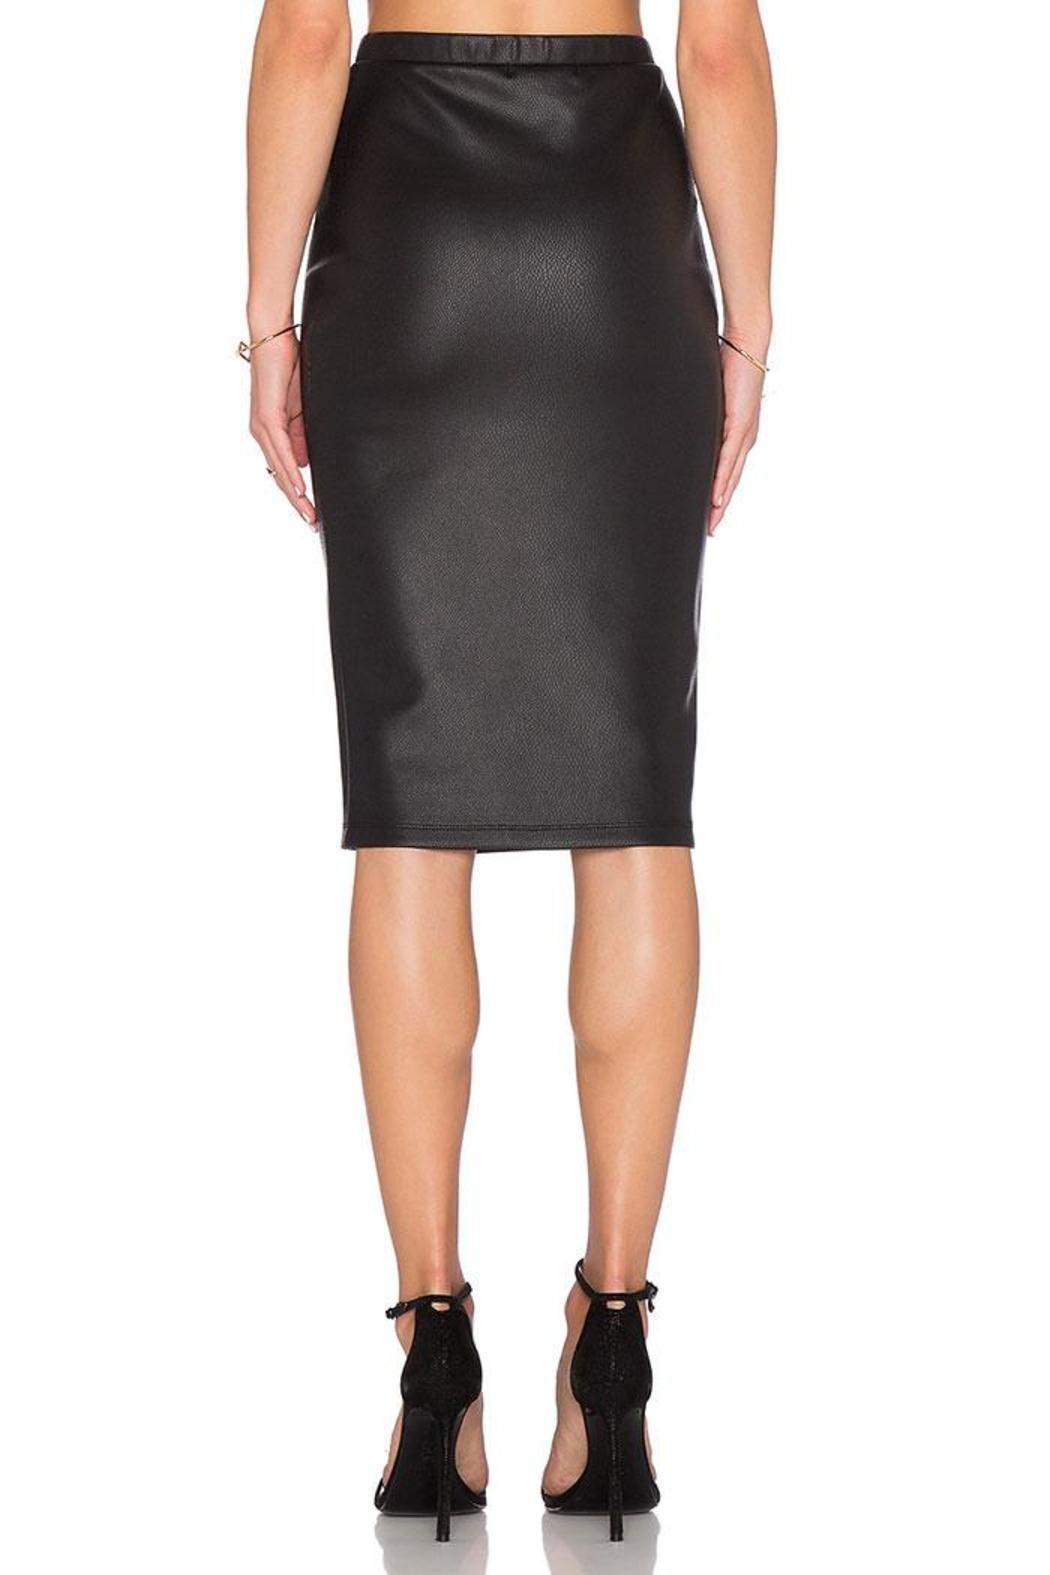 Jack by BB Dakota Kelan Snakeskin Skirt - Side Cropped Image